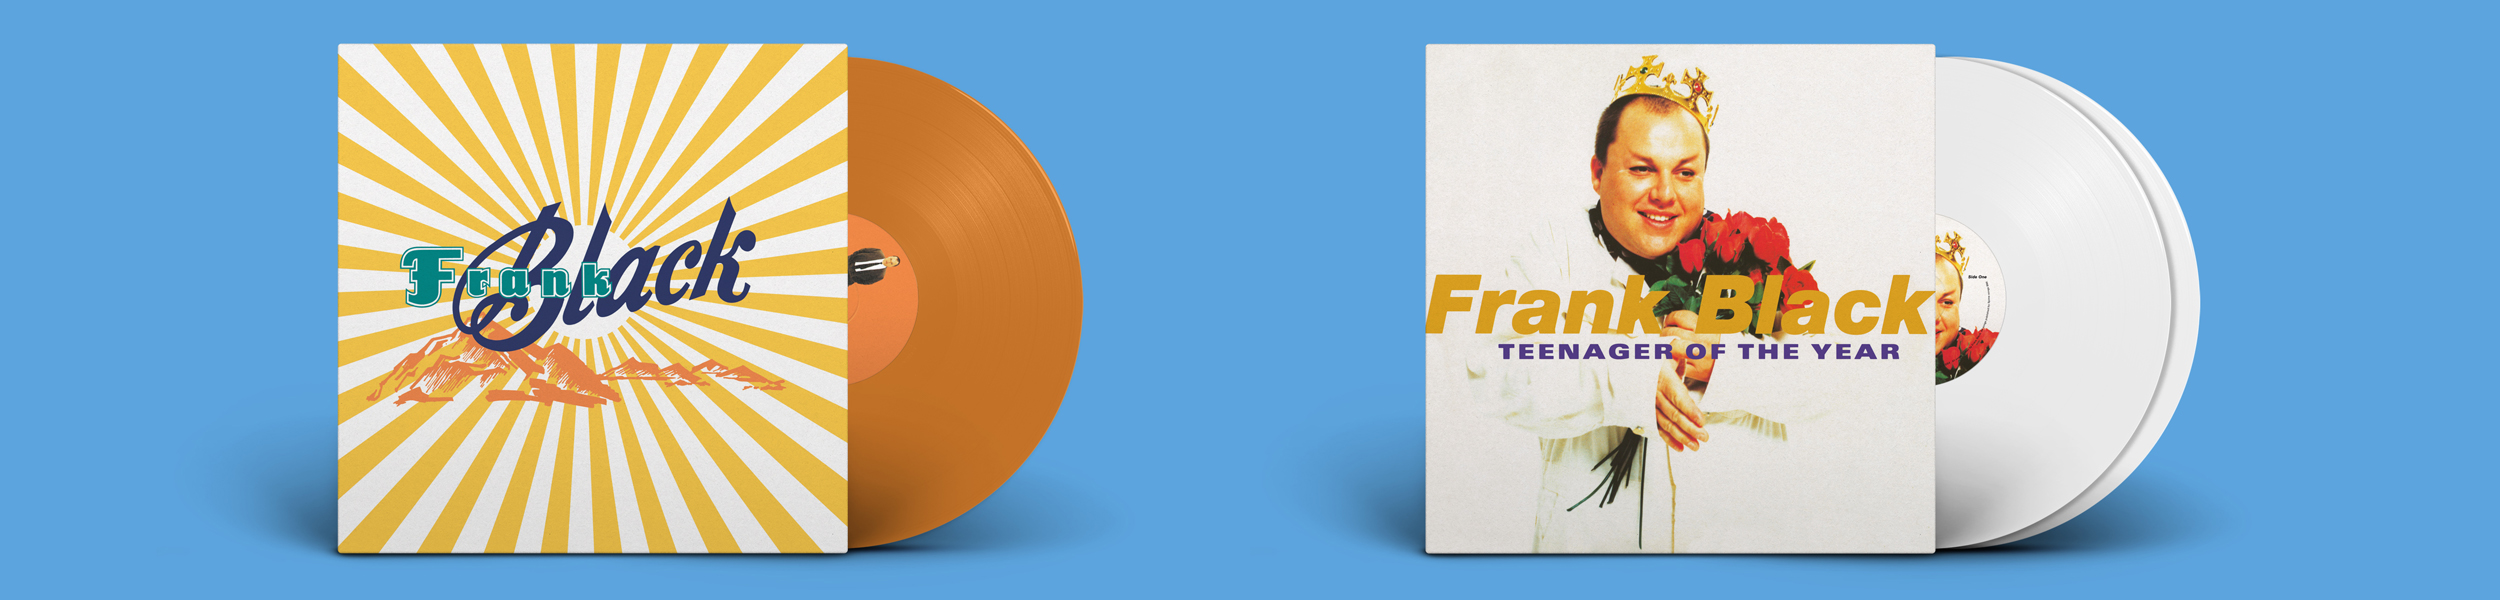 Frank Black - 'Frank Black' and 'Teenager of the Year' to be reissued for Record Store Day 2019